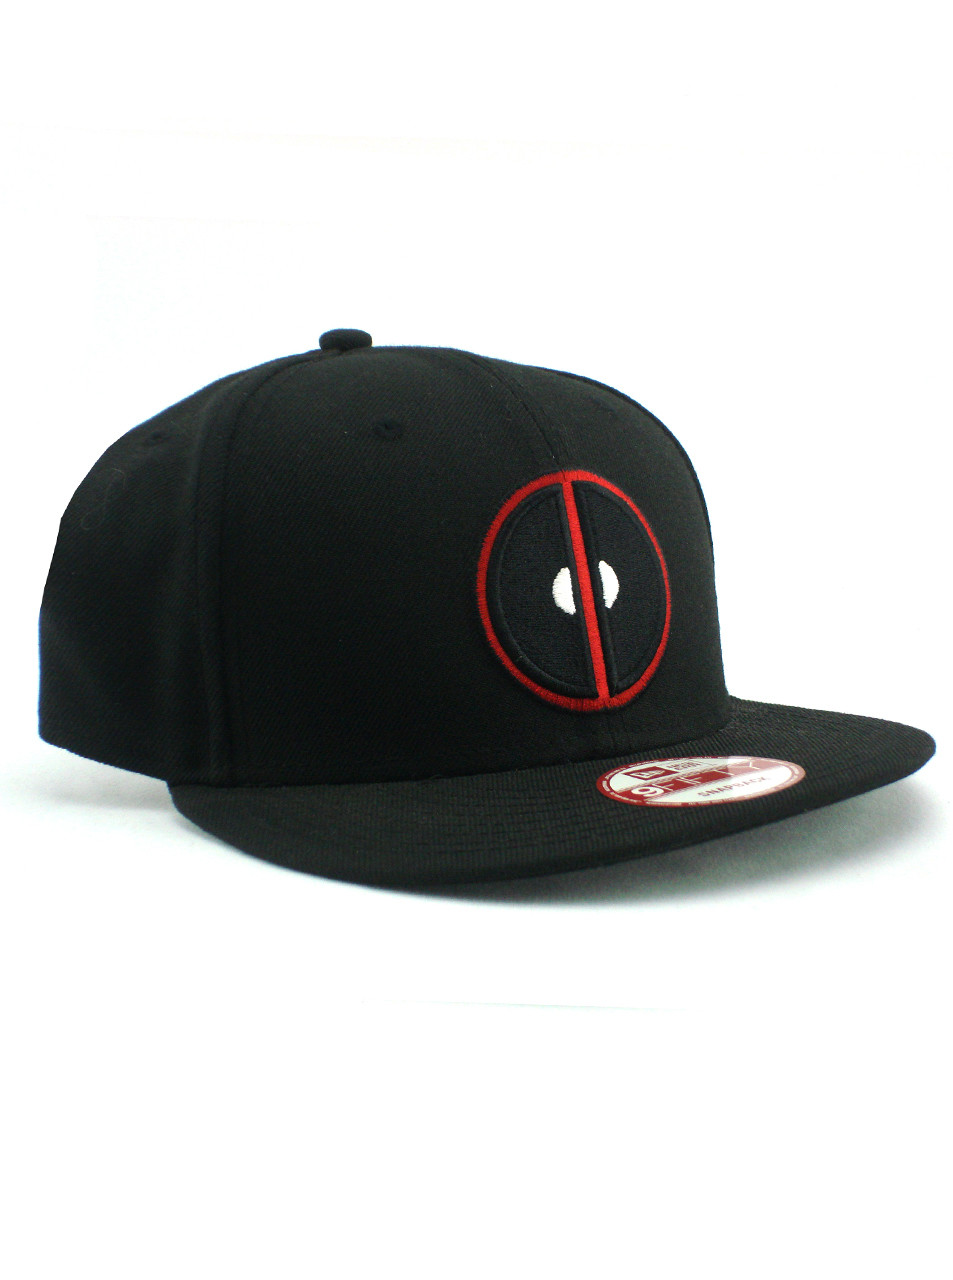 New Era Deadpool Logo Black 9fifty Snapback Hat View 1 075fe870eba